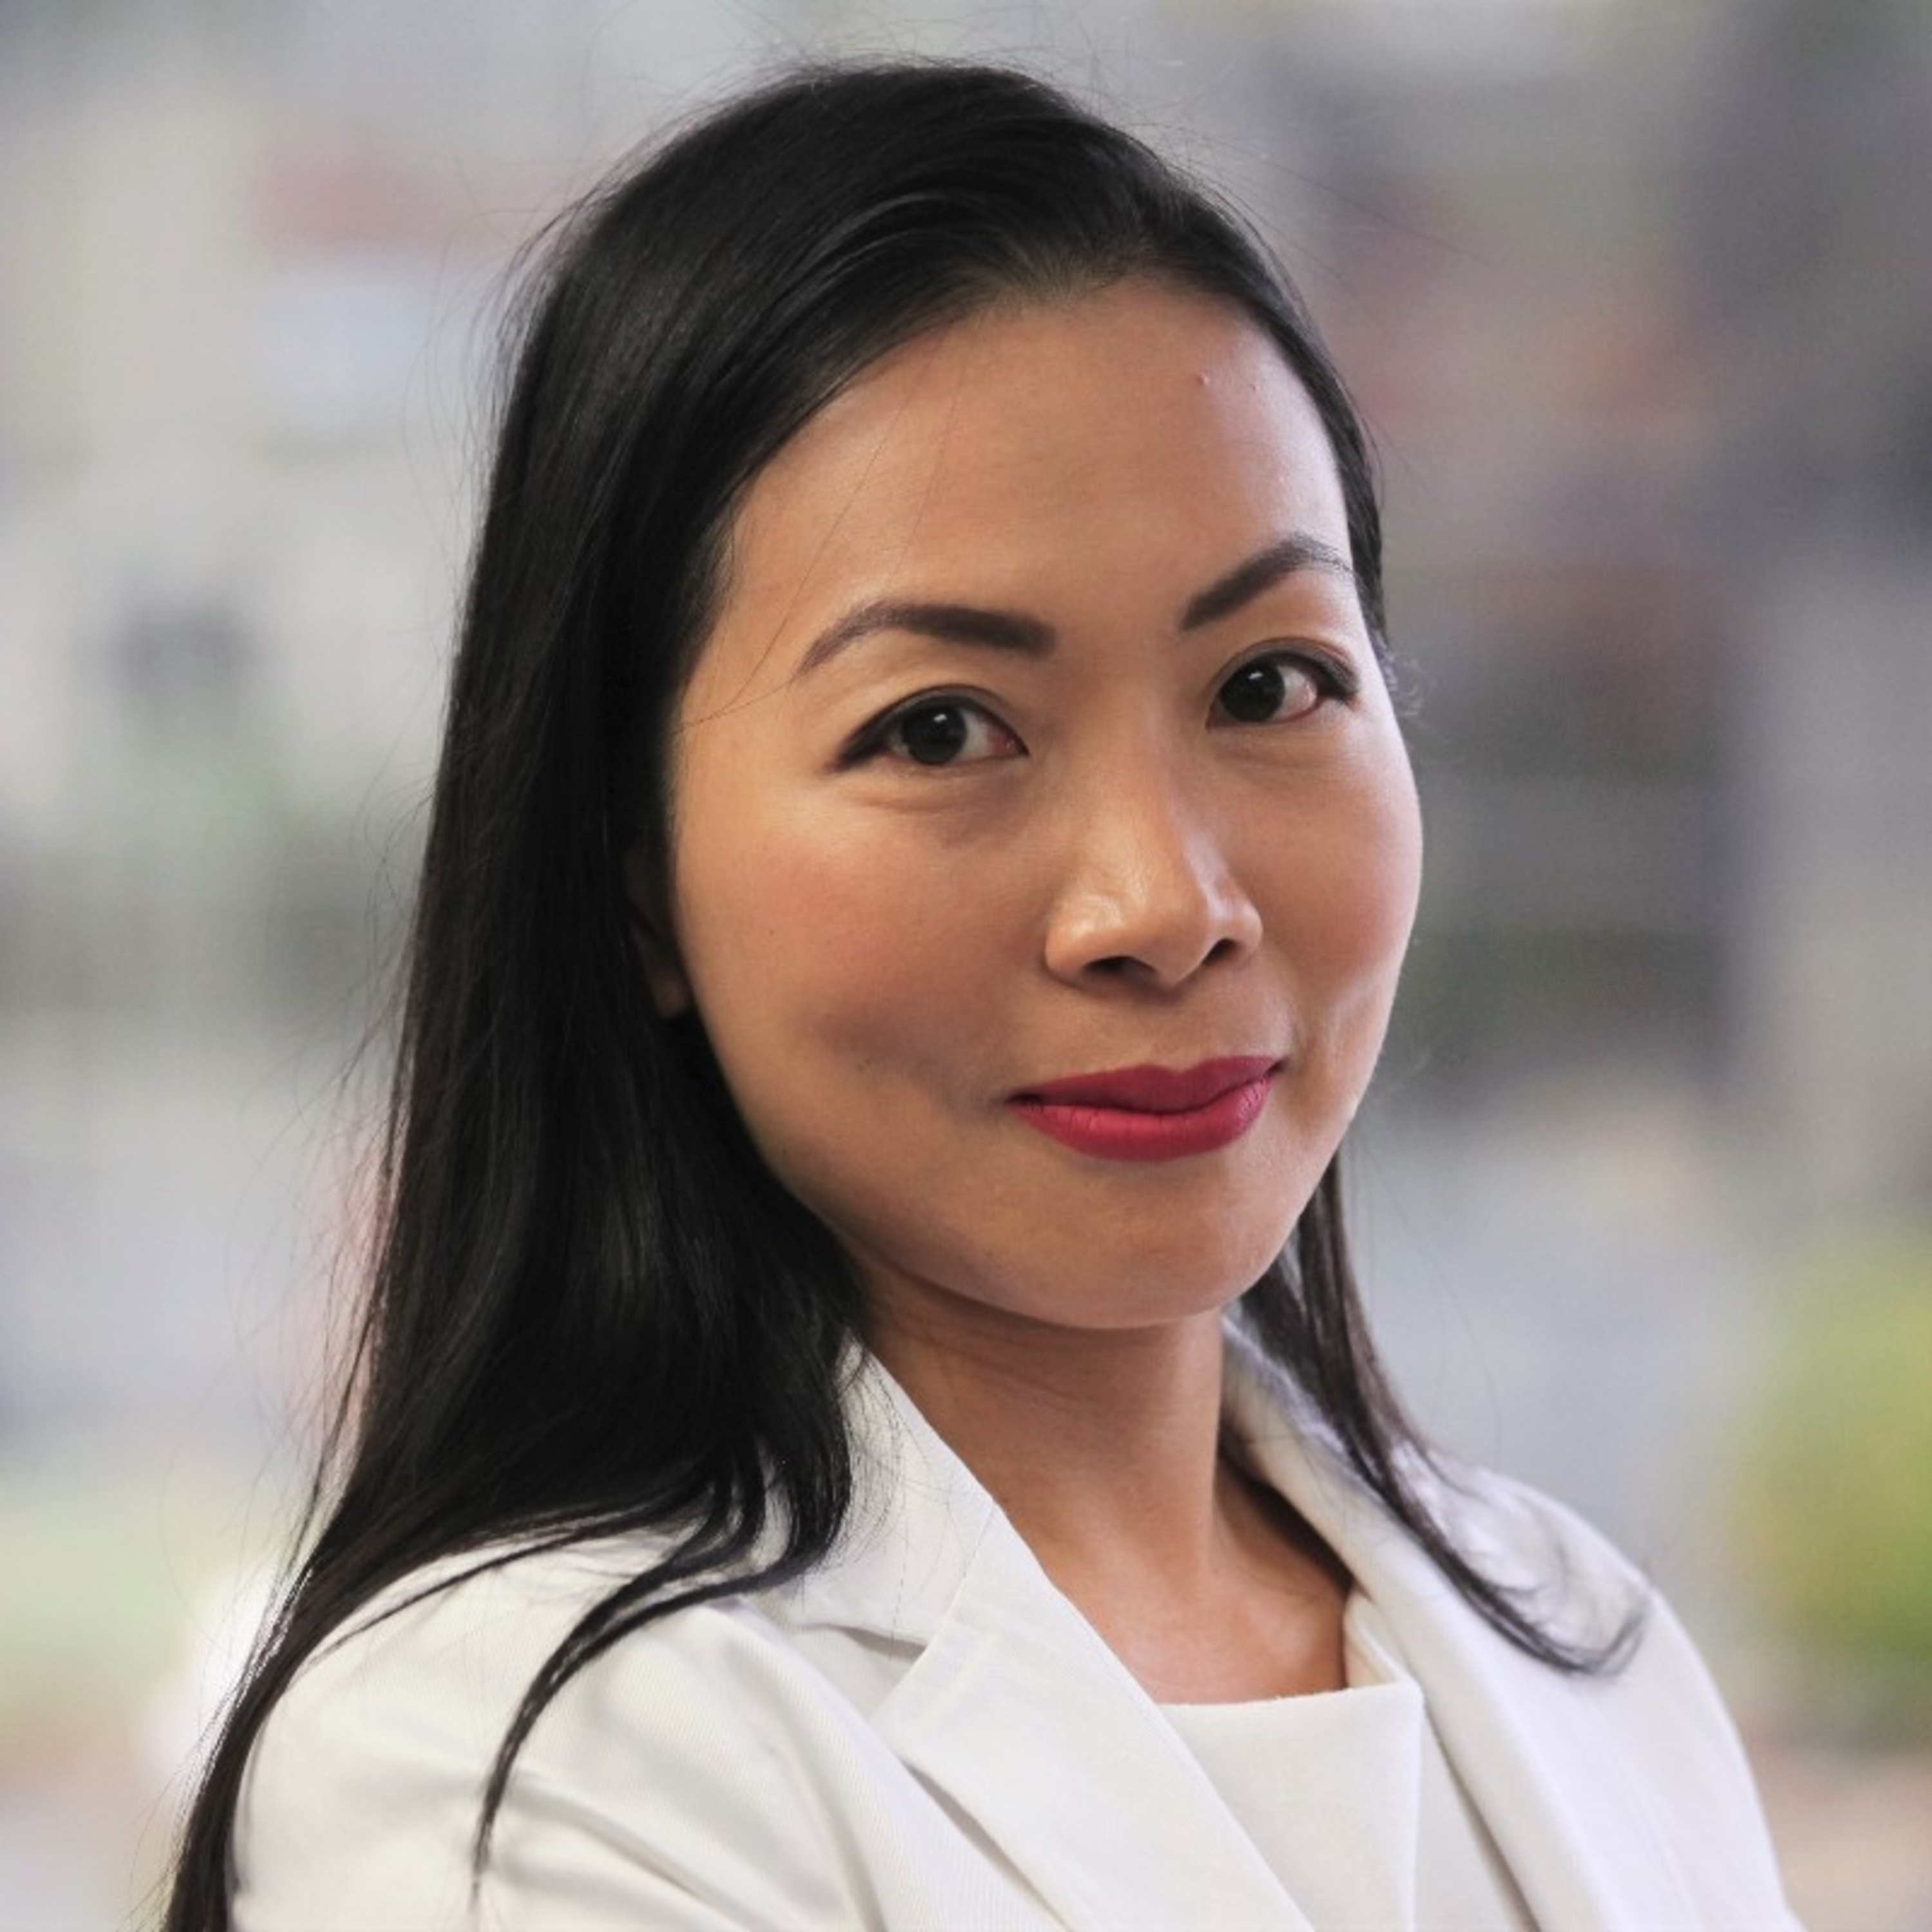 Corporate Venture Capital #3 - who is the right fit for the CVC and how to improve your chances of getting funded, by Tina Tosukhowong.